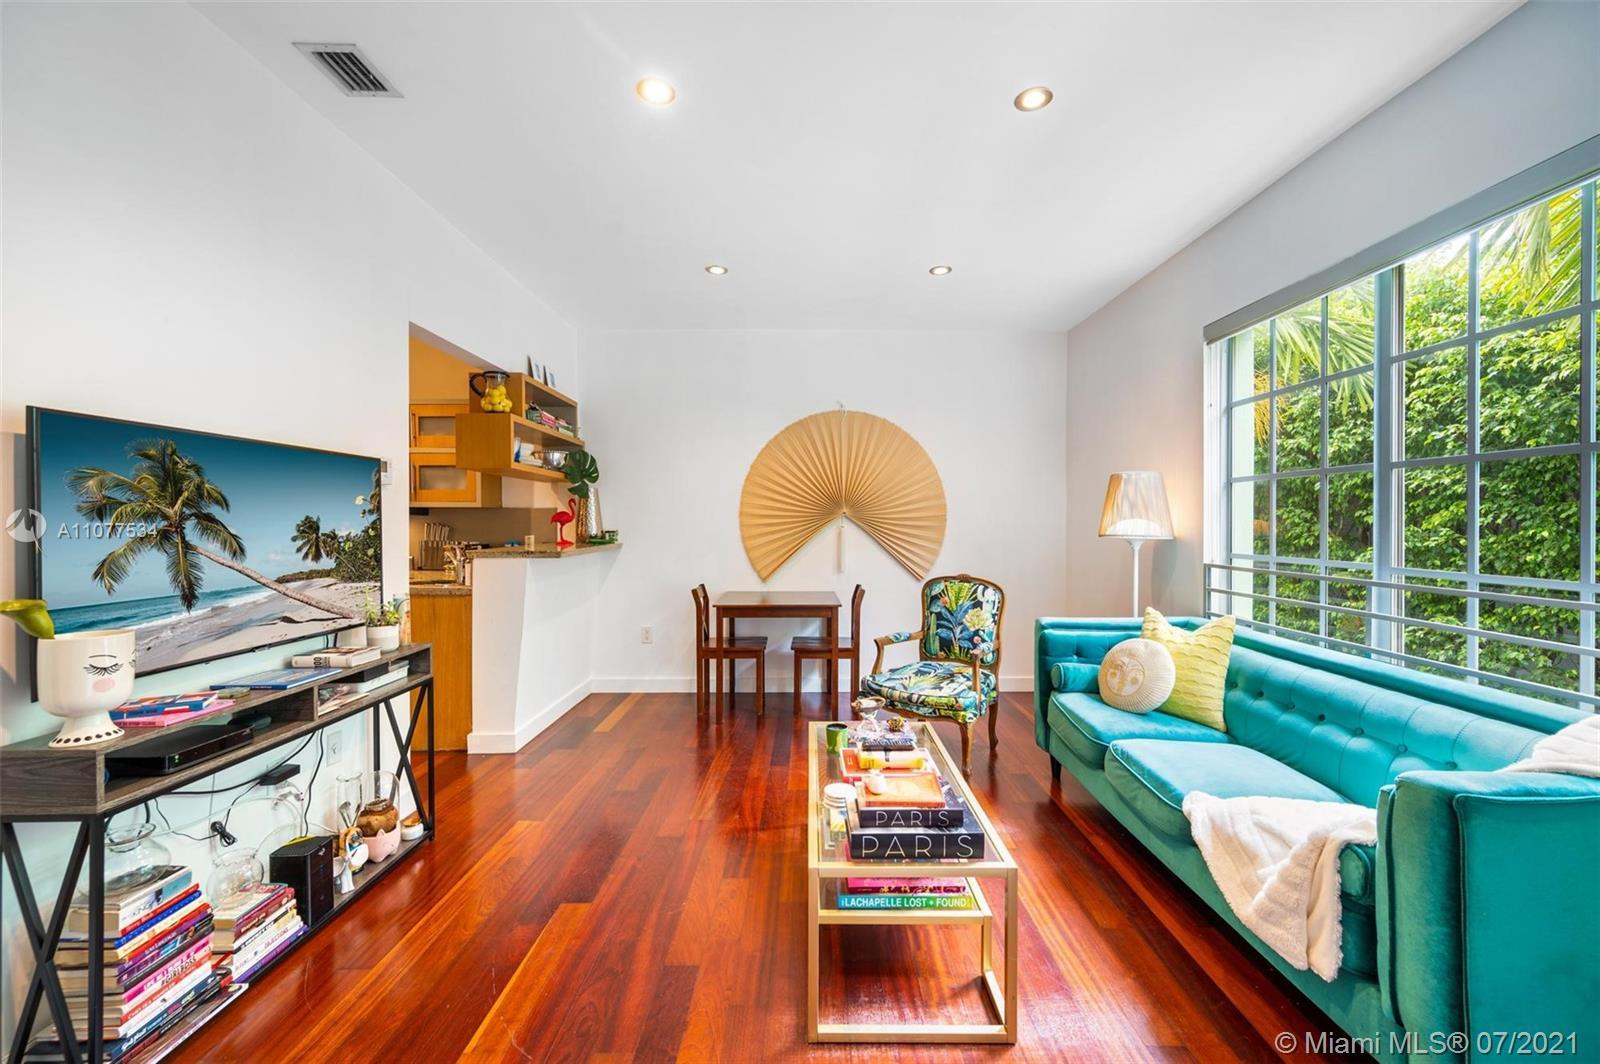 Don't look any further! This renovated unit in an Art Deco building in world famous South Beach offe